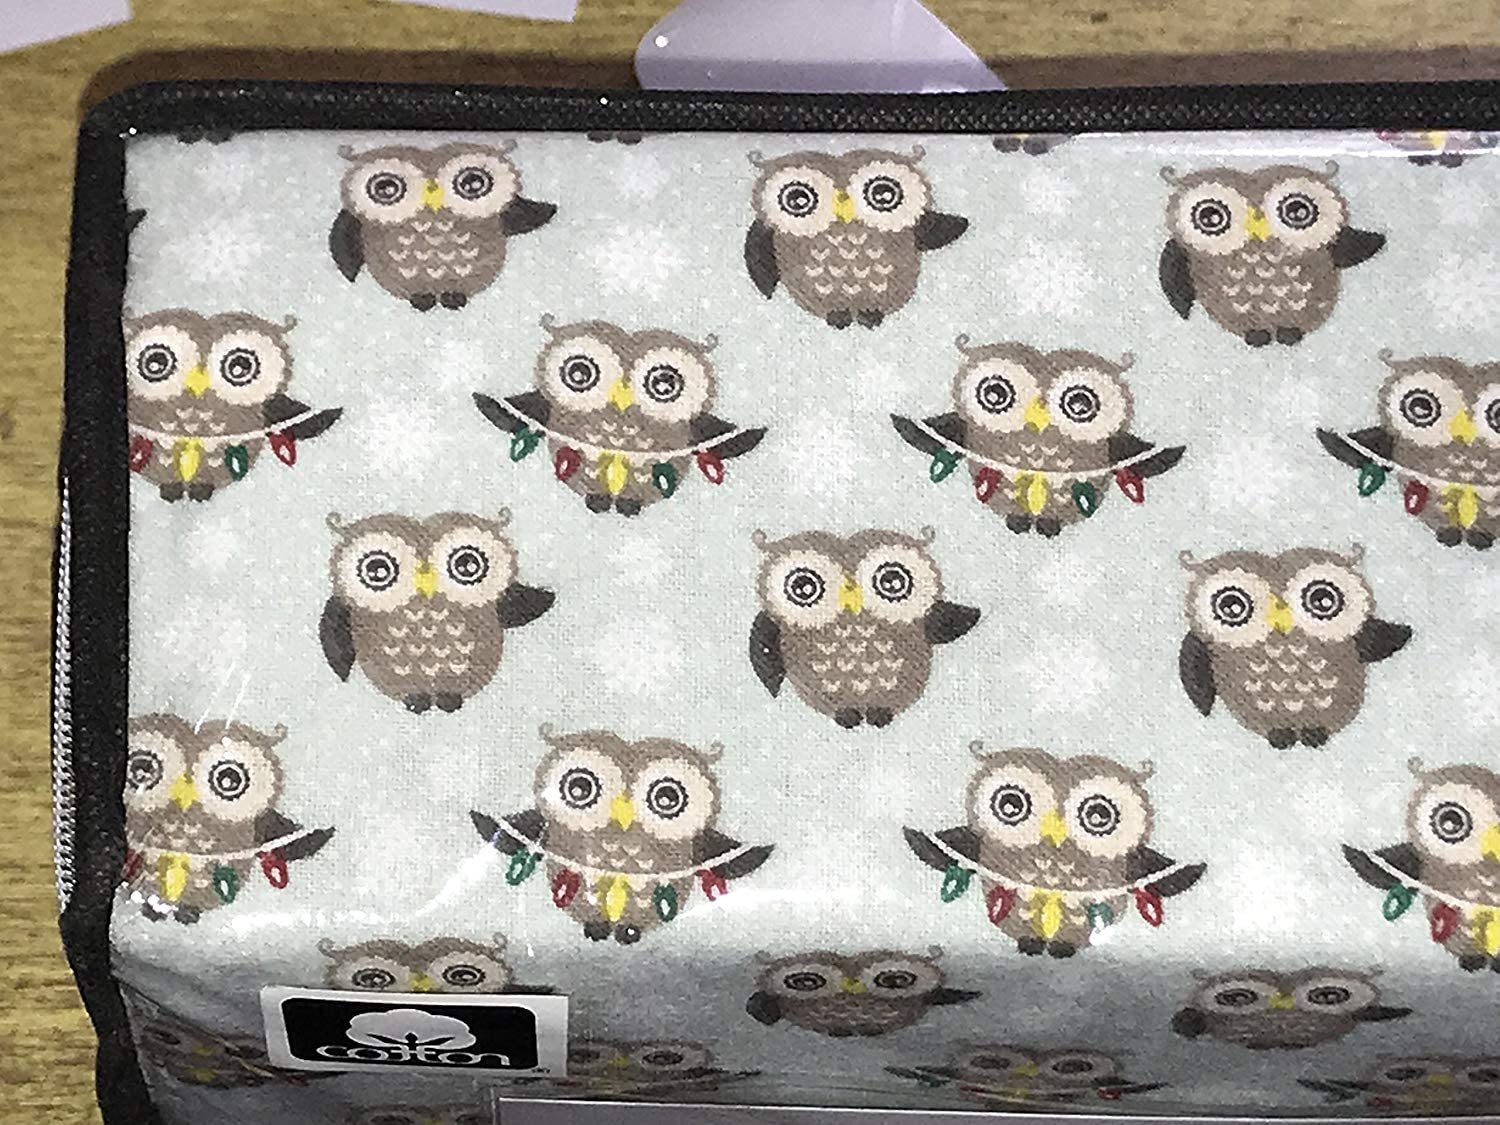 Full Size Snowfakes Christmas Lights Sierra Lodge Christmas Owls Cotton Flannel Sheet Set Sheet Pillowcase Sets